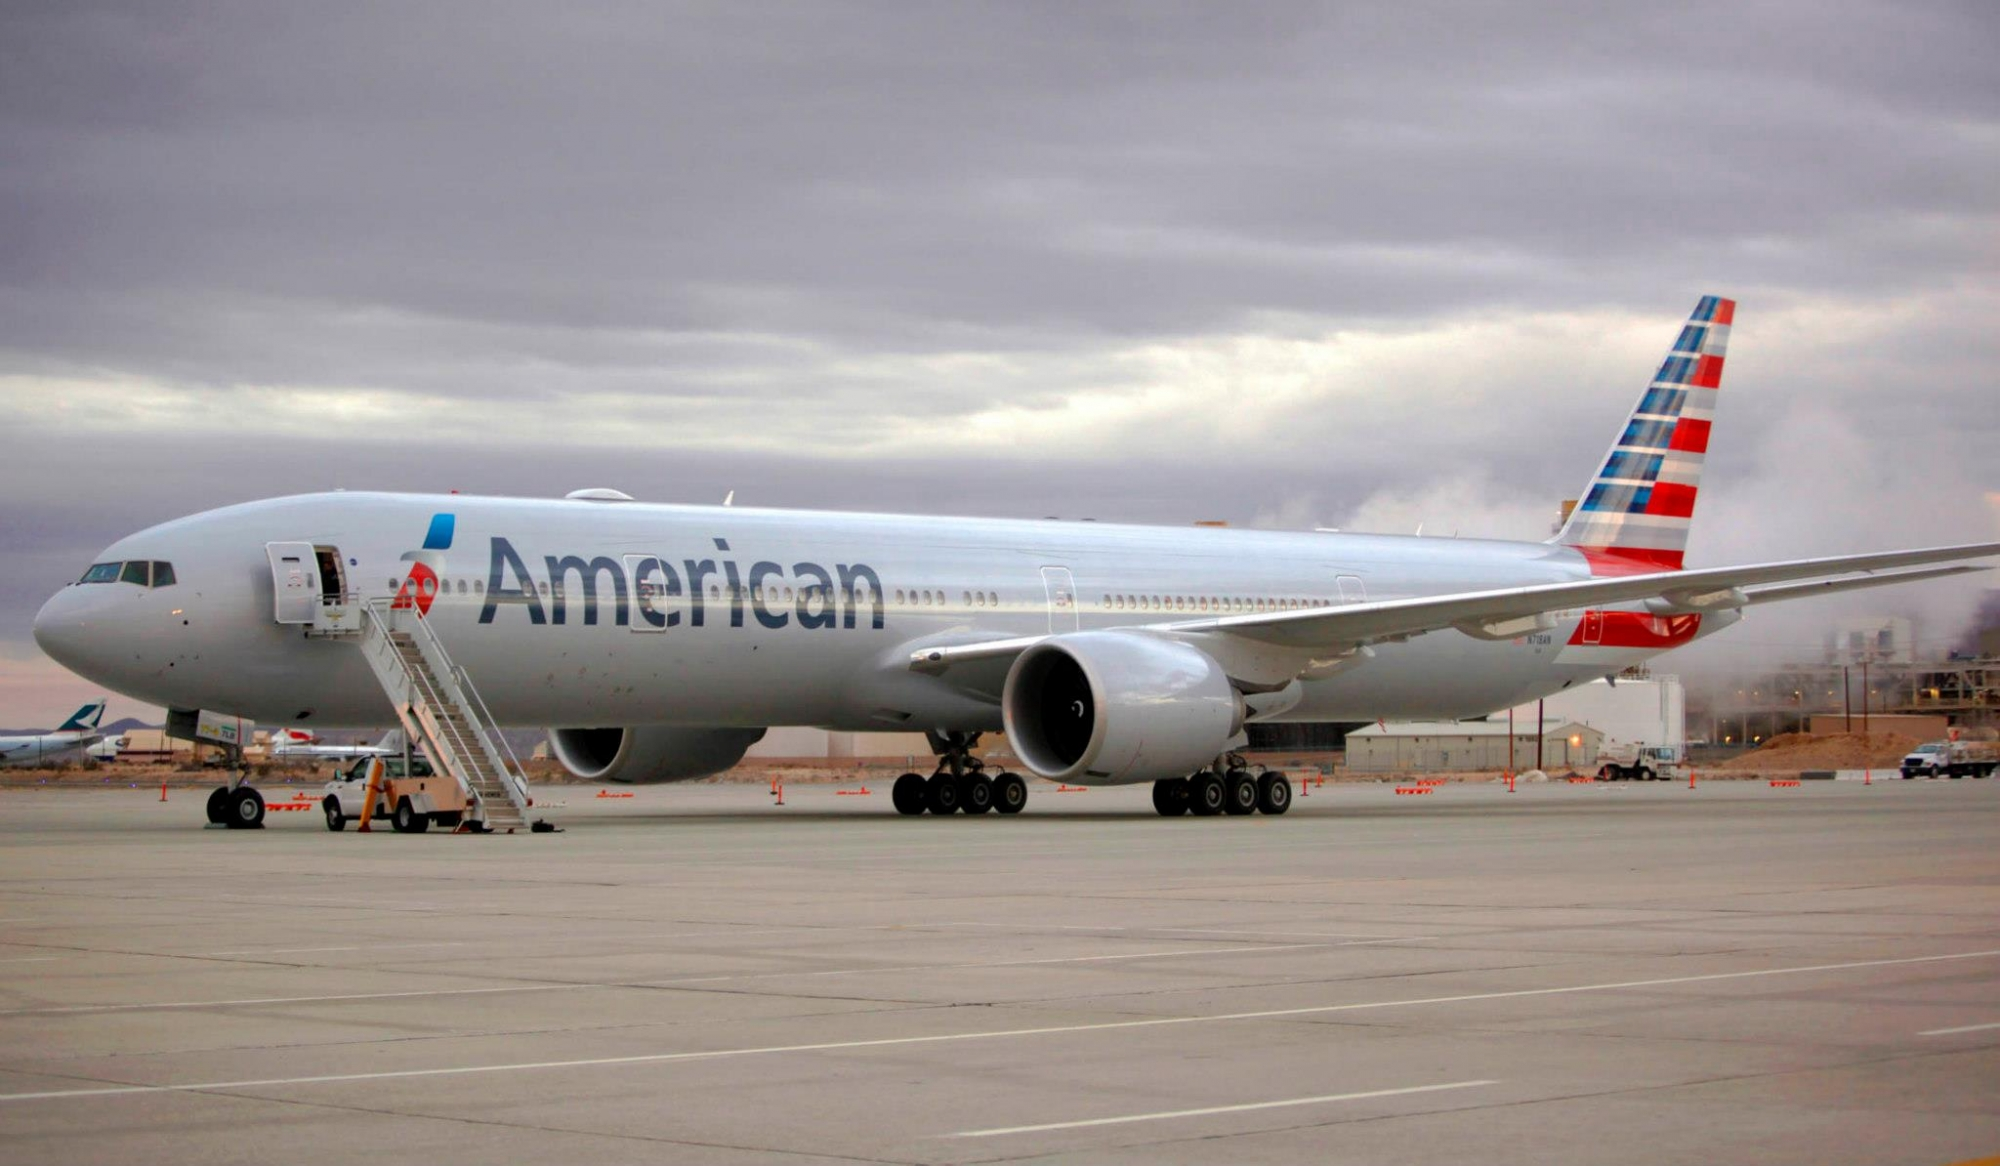 Qantas Welcomes American Airlines Flagship B777 to Sydney